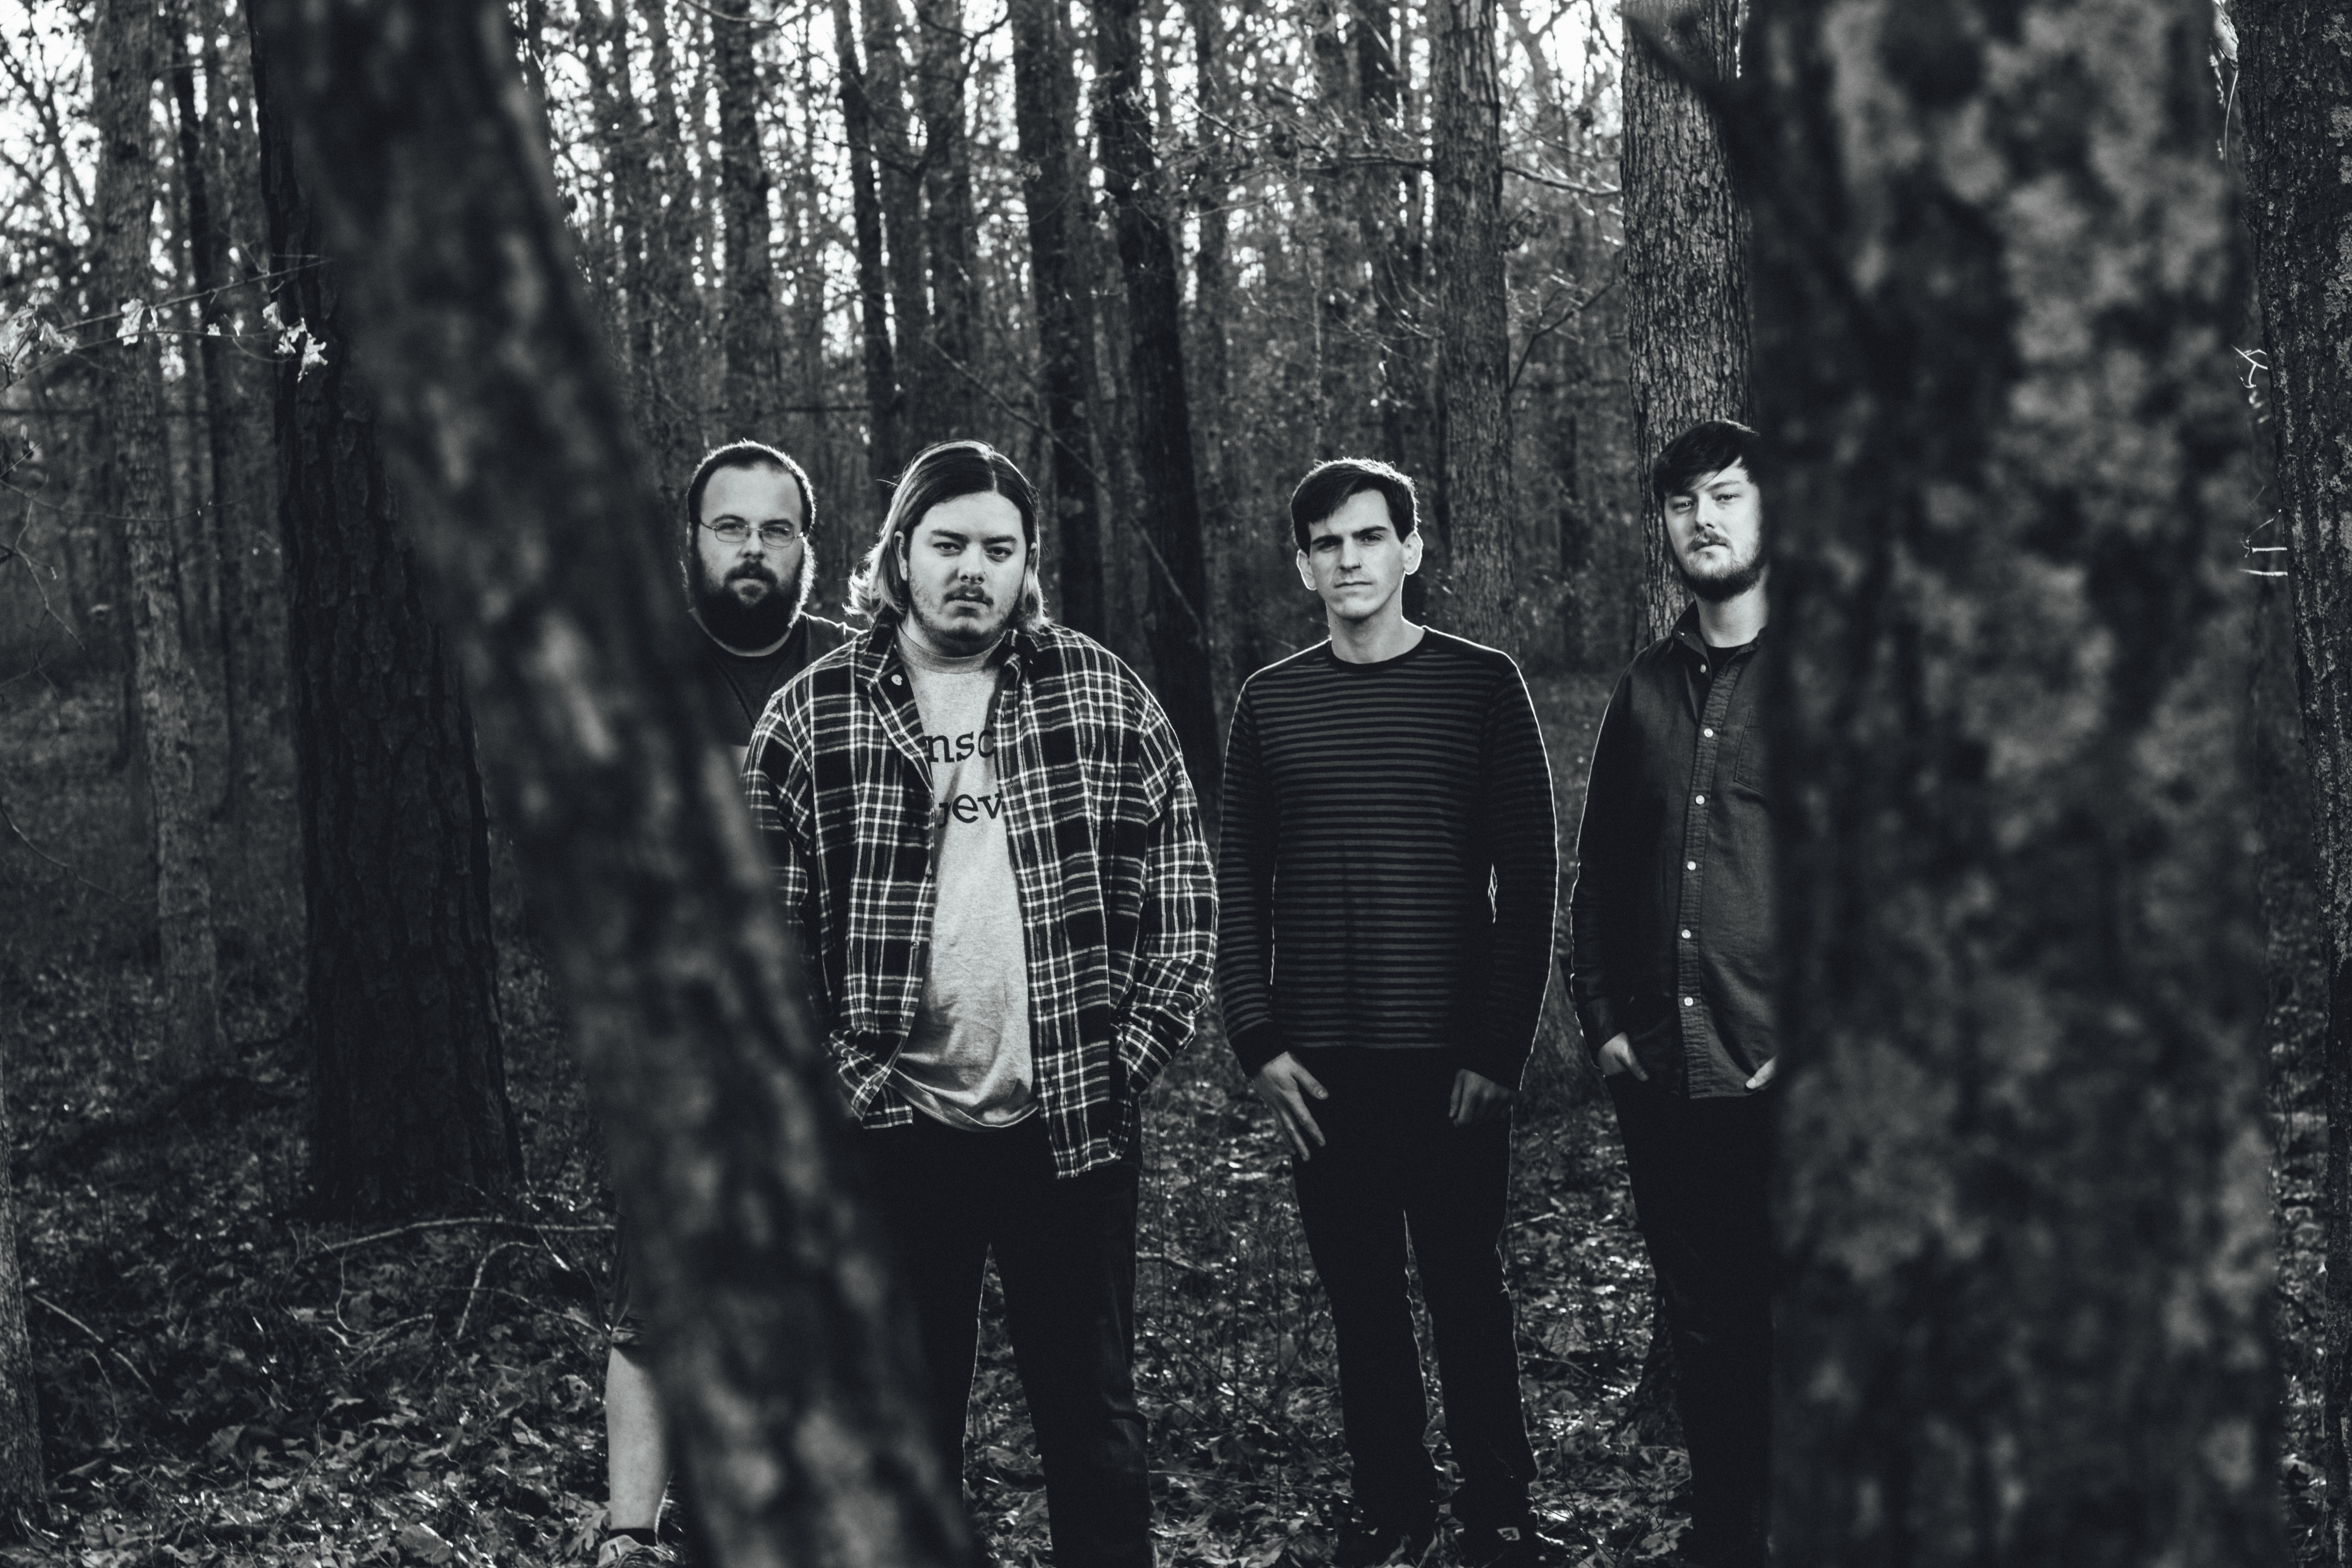 PREMIERE: Suntitle collapse under the emotional weight of 'The Loss Of'